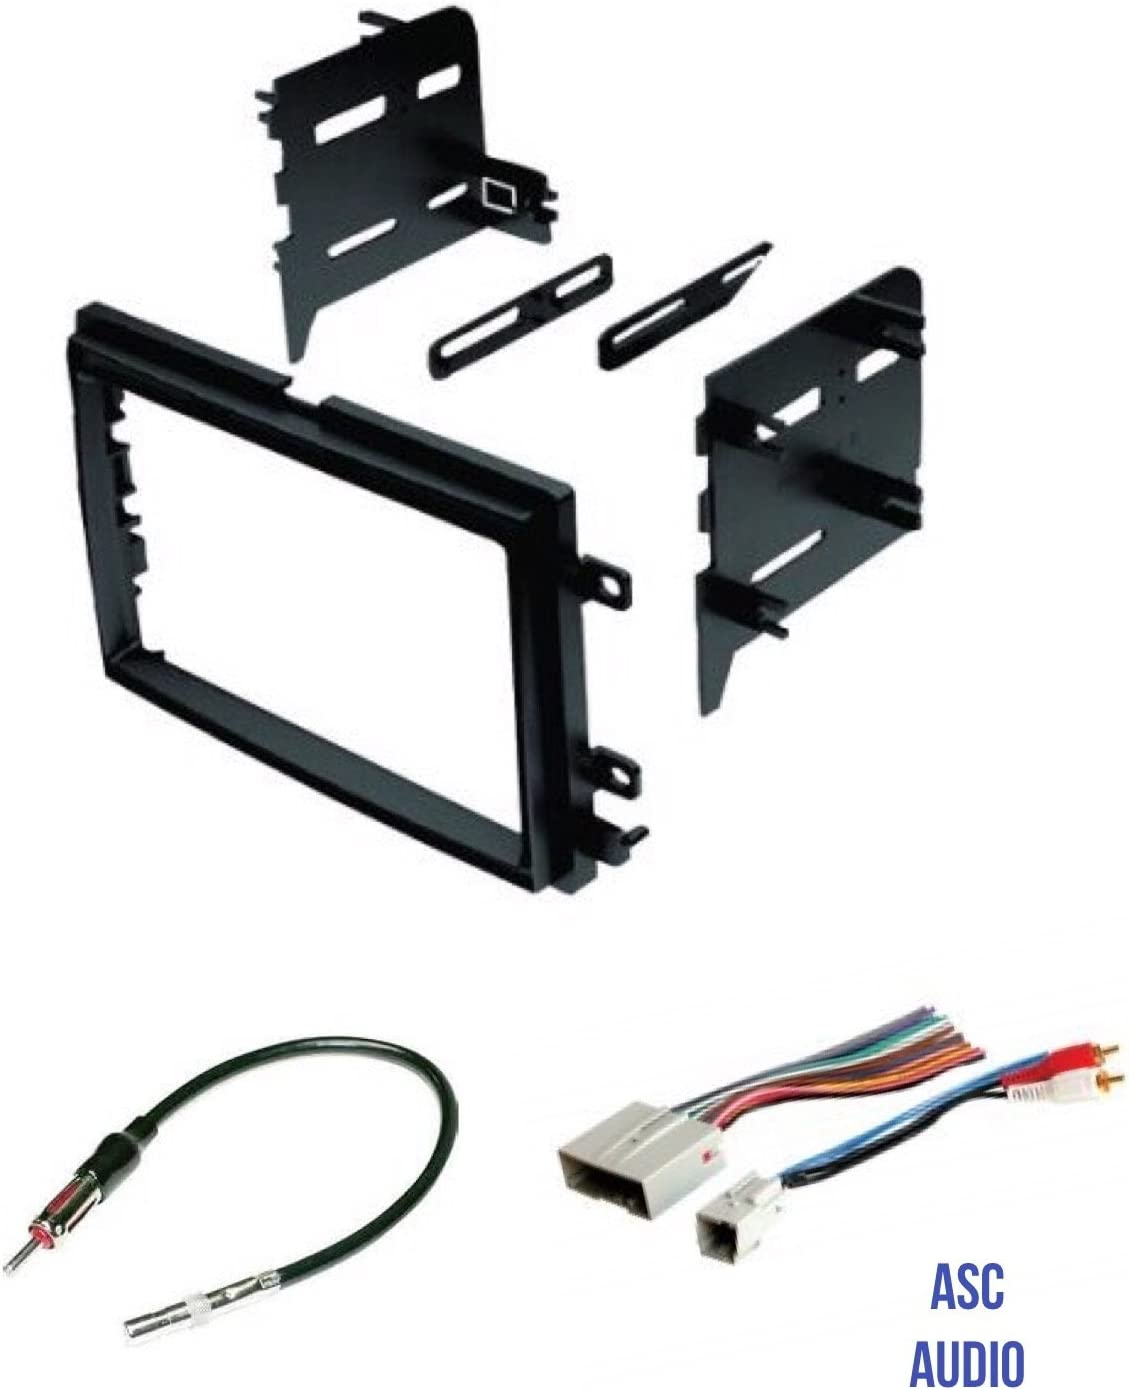 Amazon.com: ASC Audio Car Stereo Radio Install Dash Kit, Wire Harness, and  Antenna Adapter to Install a Double Din Radio for Some Ford Lincoln Mercury  Vehicles - Compatible Vehicles Listed Below: CarAmazon.com